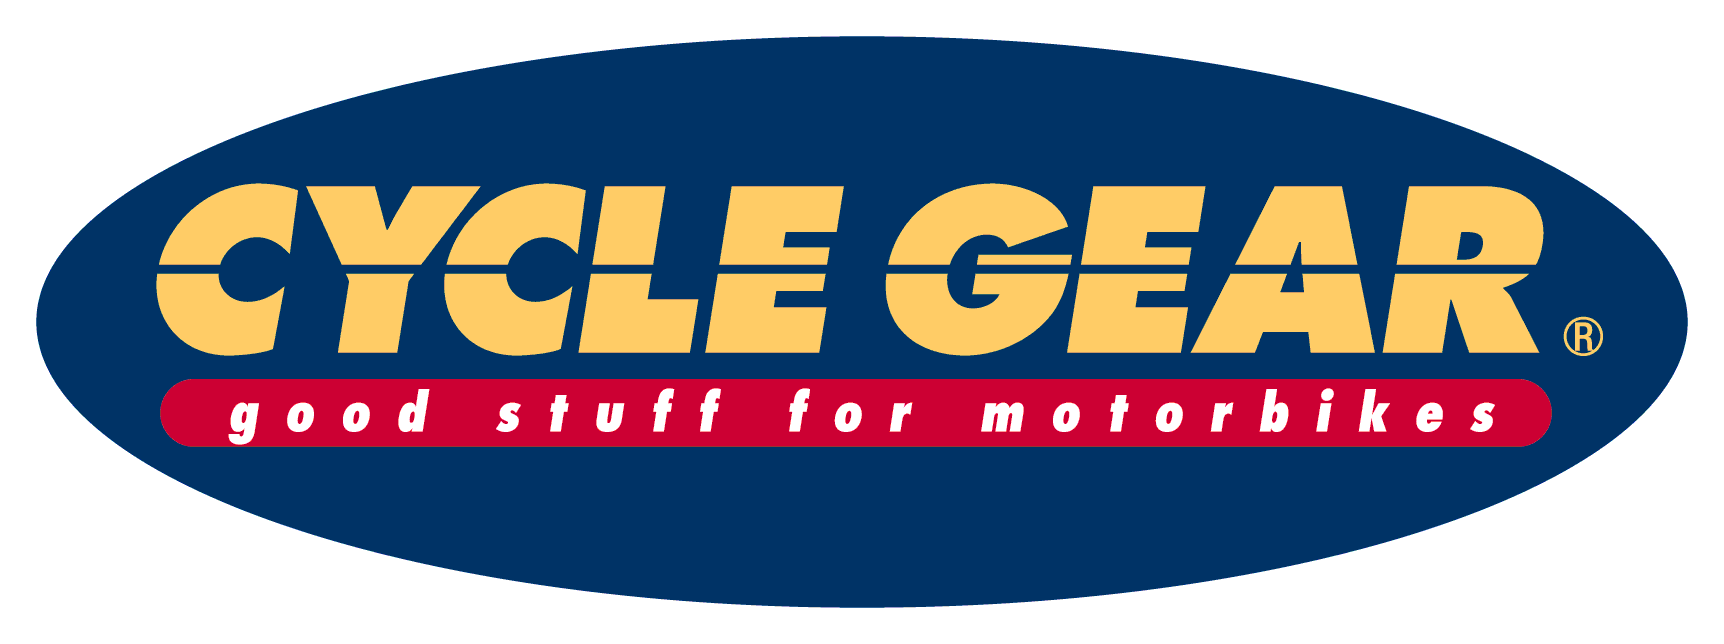 Image result for cycle gear logo